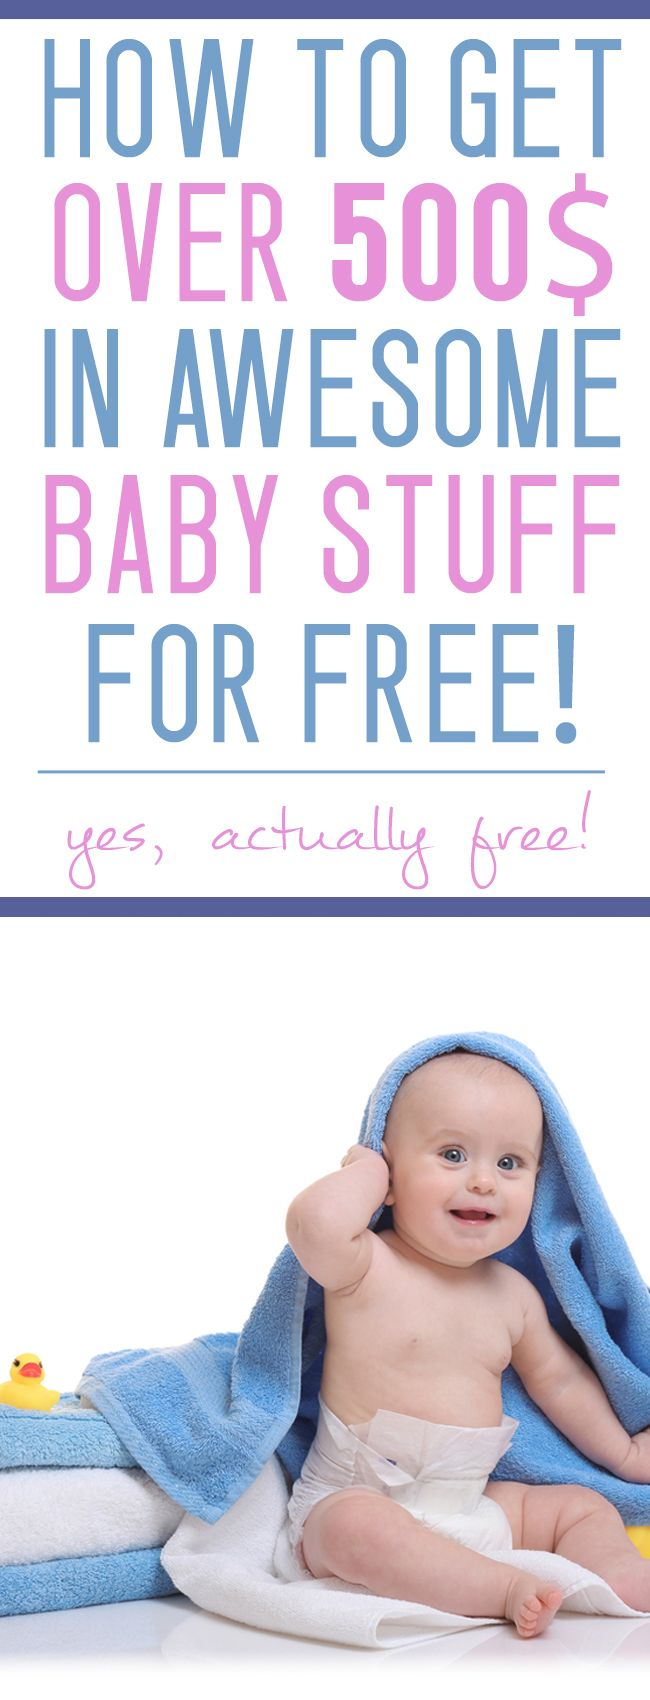 New Baby FREEBIES! Check this out - this stuff is AWESOME!